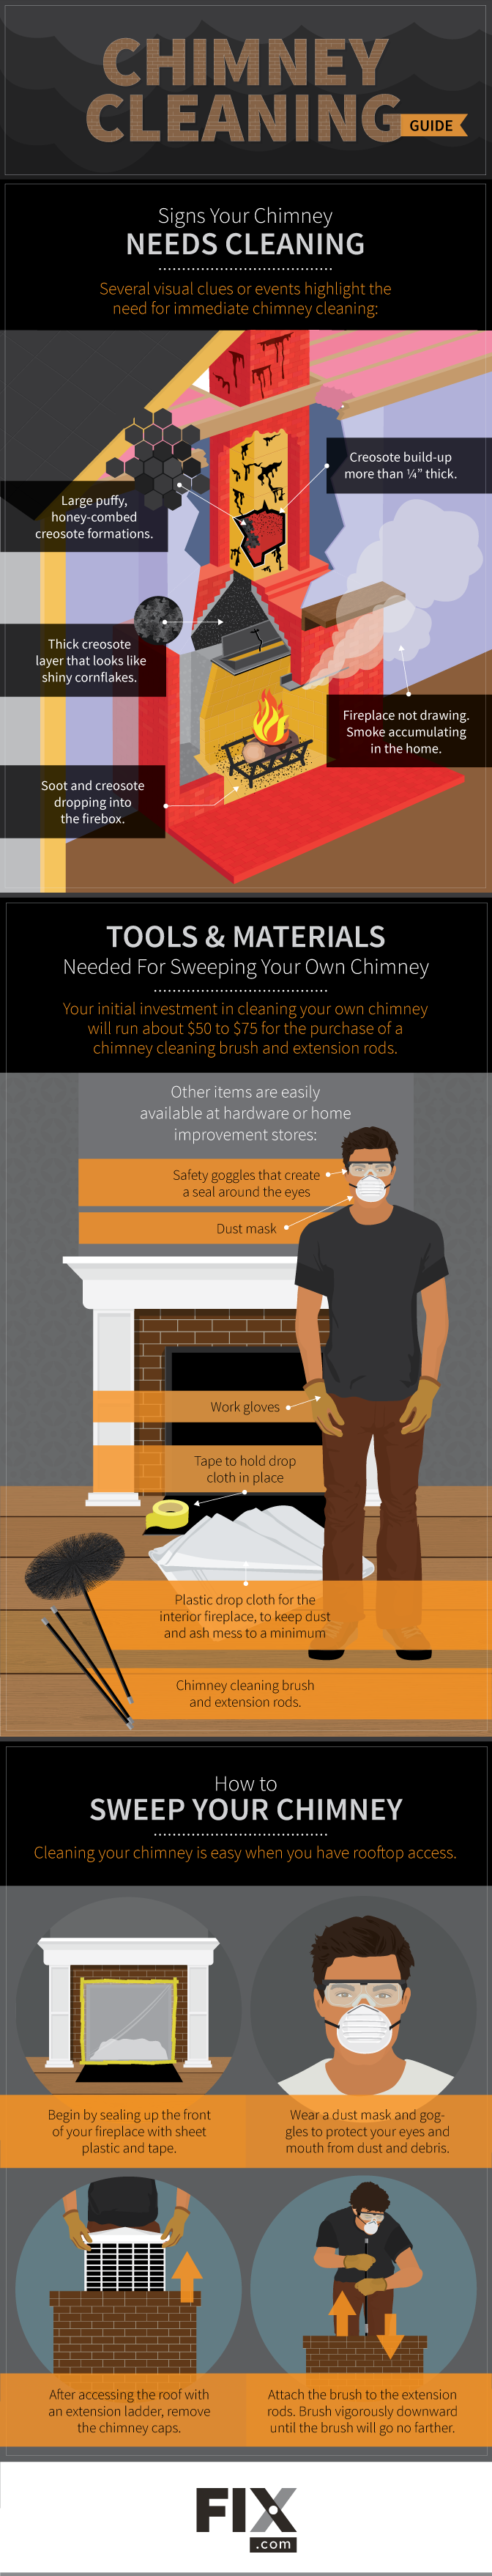 How to Clean Your Chimney | Fix com